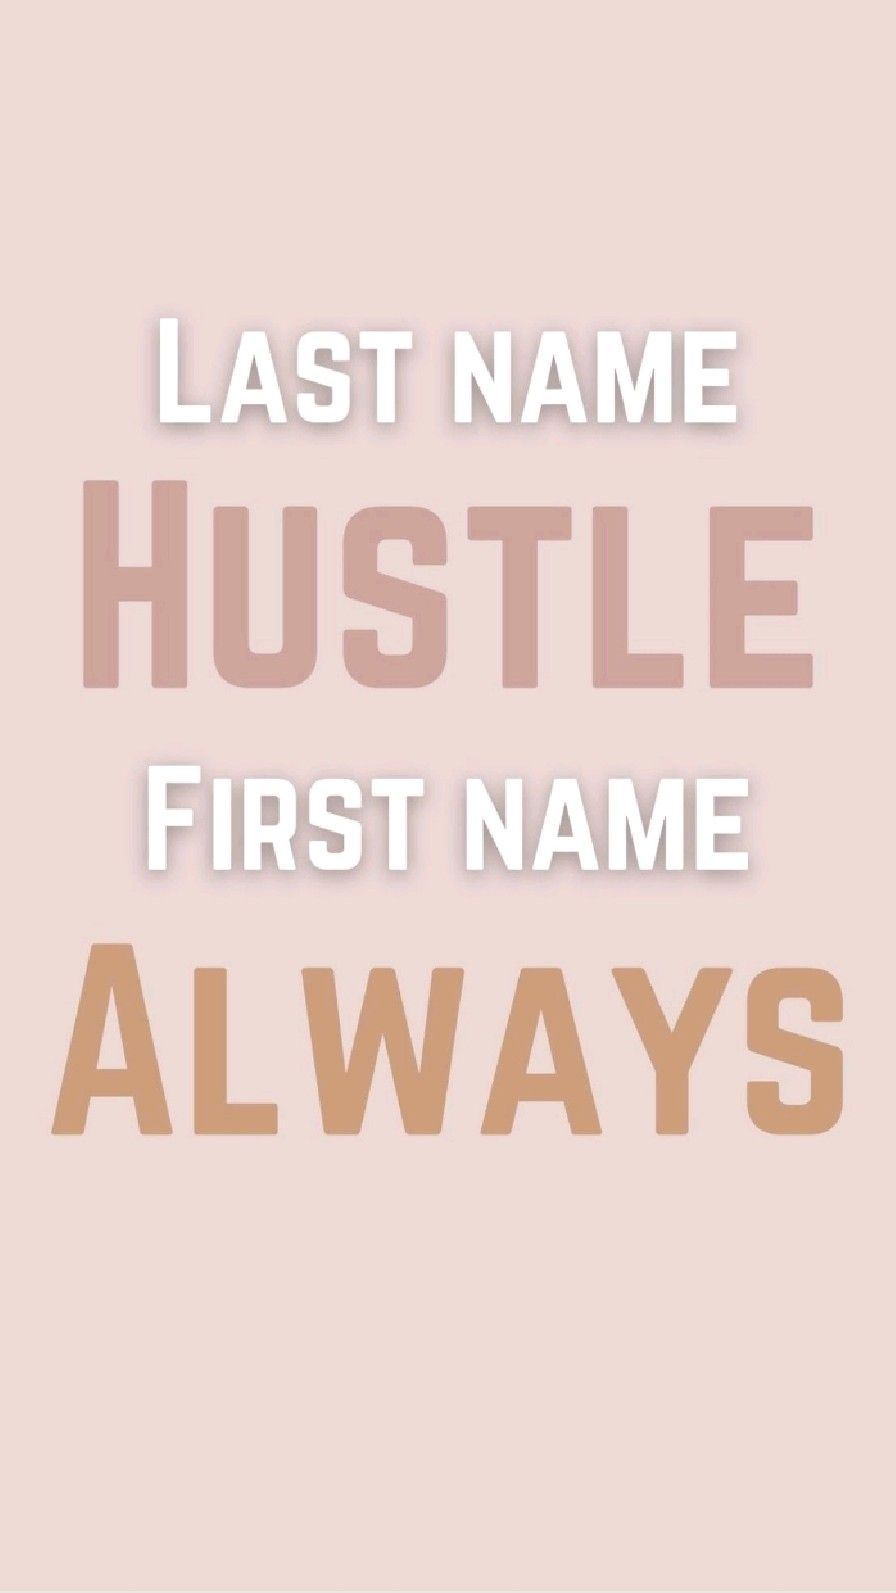 Hustle Motivational quotes for positive vibes and work Motivation